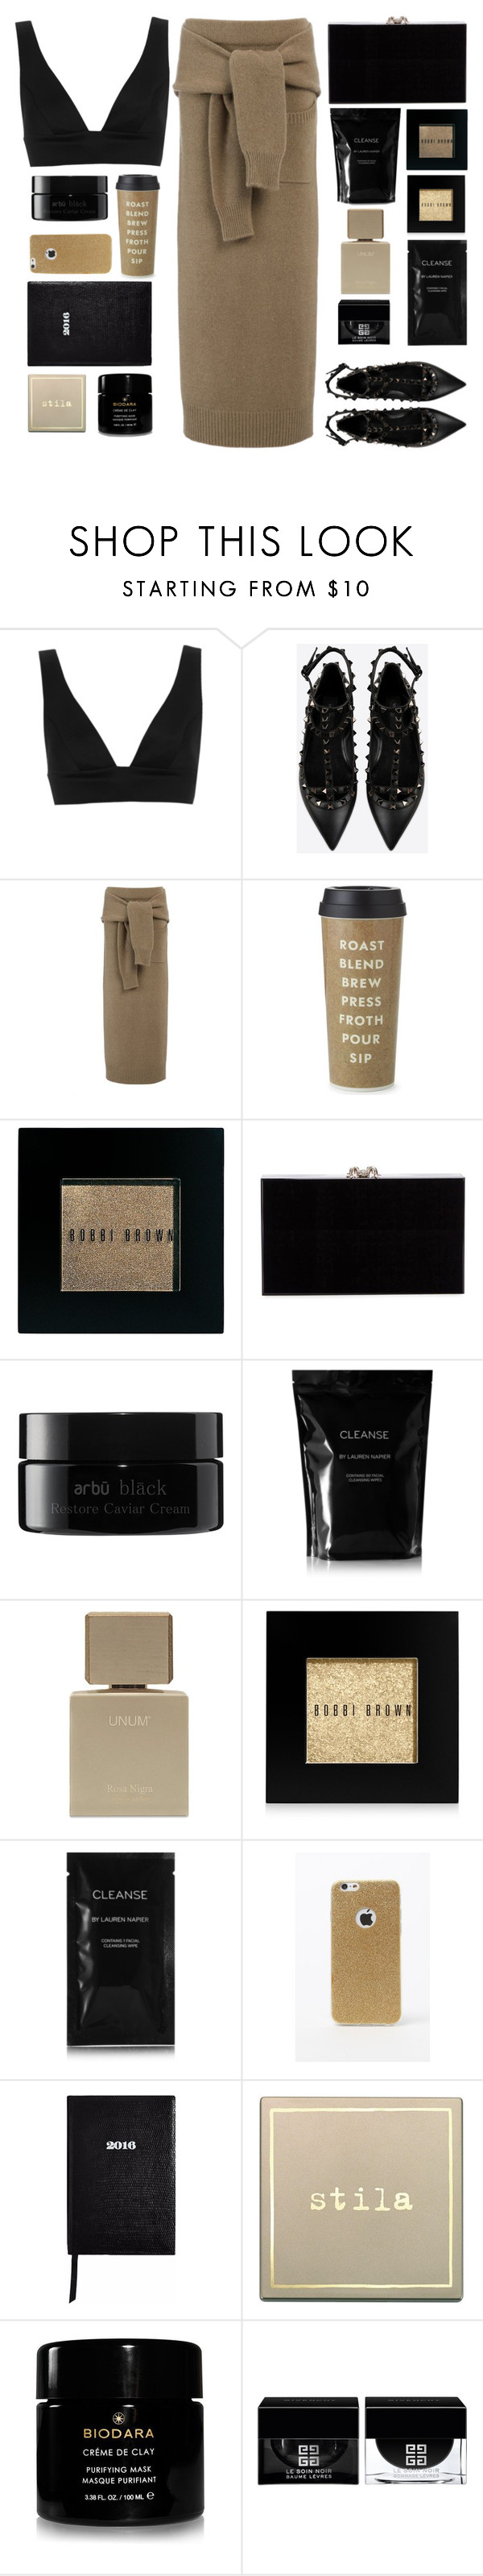 """""""Untitled #72"""" by dianakhuzatyan ❤ liked on Polyvore featuring Topshop, Valentino, Joseph, Kate Spade, Bobbi Brown Cosmetics, Charlotte Olympia, arbÅ«, Cleanse by Lauren Napier, LA: Hearts and Sloane Stationery"""